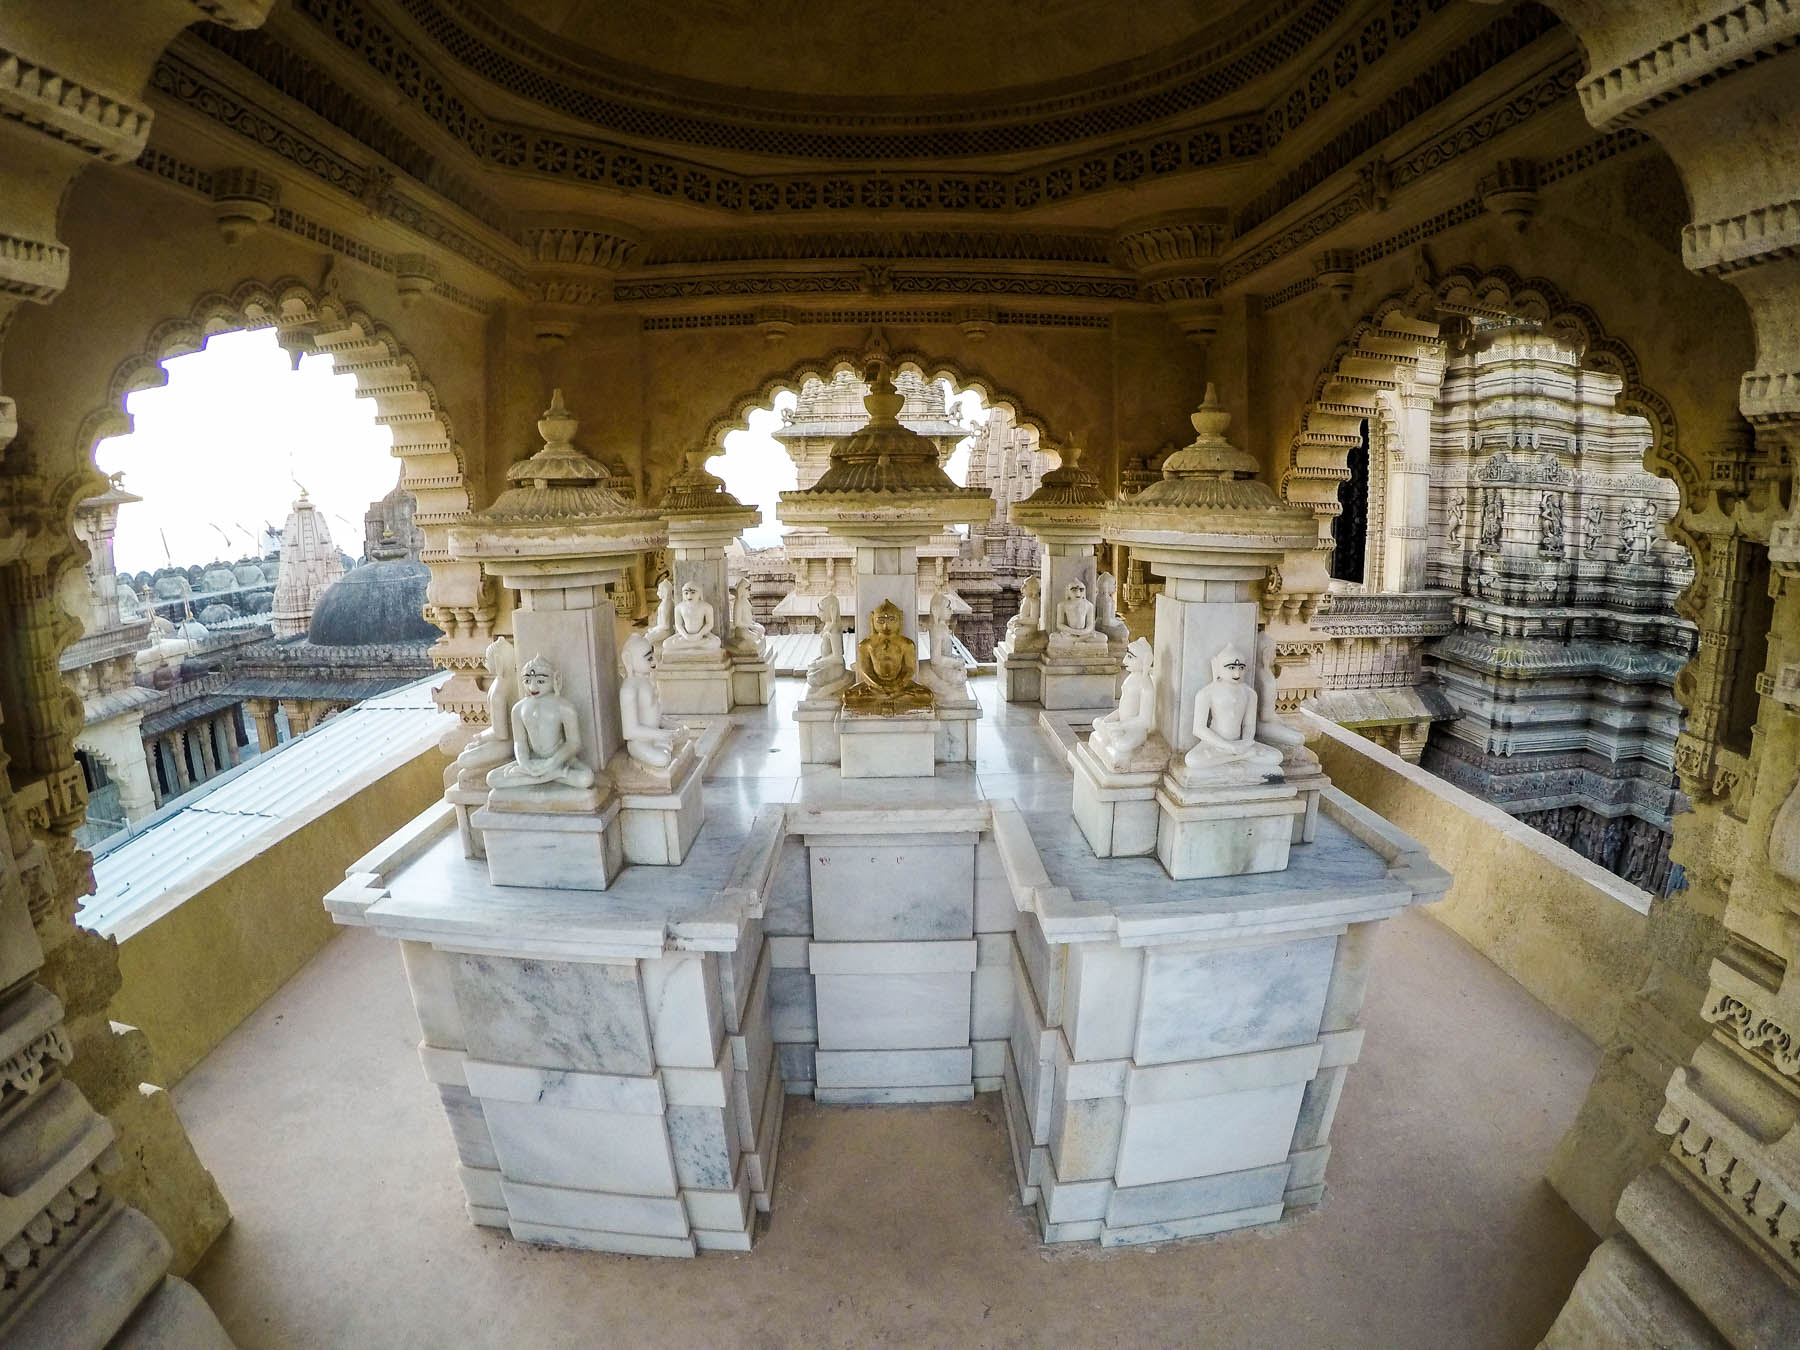 Jain pilgrimage in Palitana, India - Tirthankar statues on Girnar mountain - Lost With Purpose